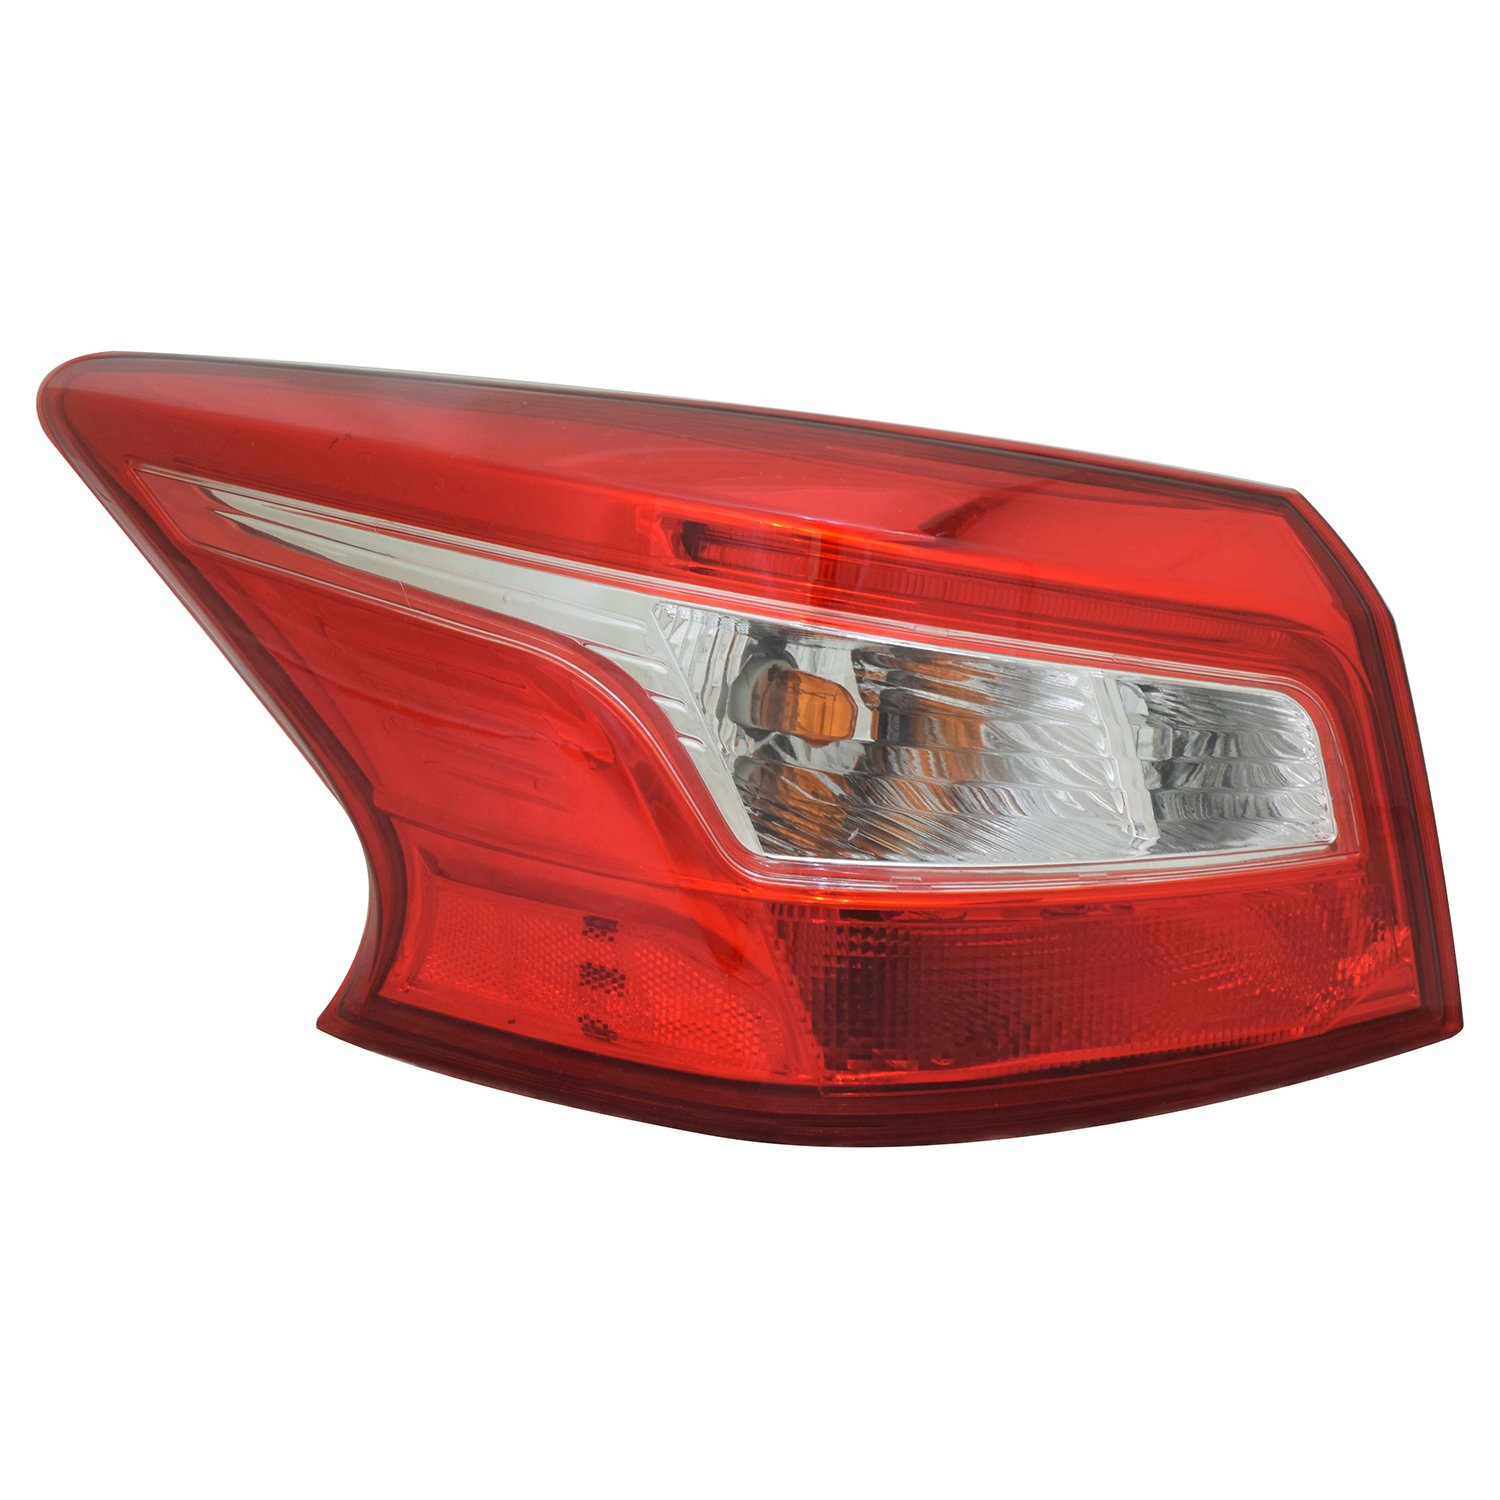 TYC 11-6906-00-1 Nissan Sentra Replacement Left Tail Lamp